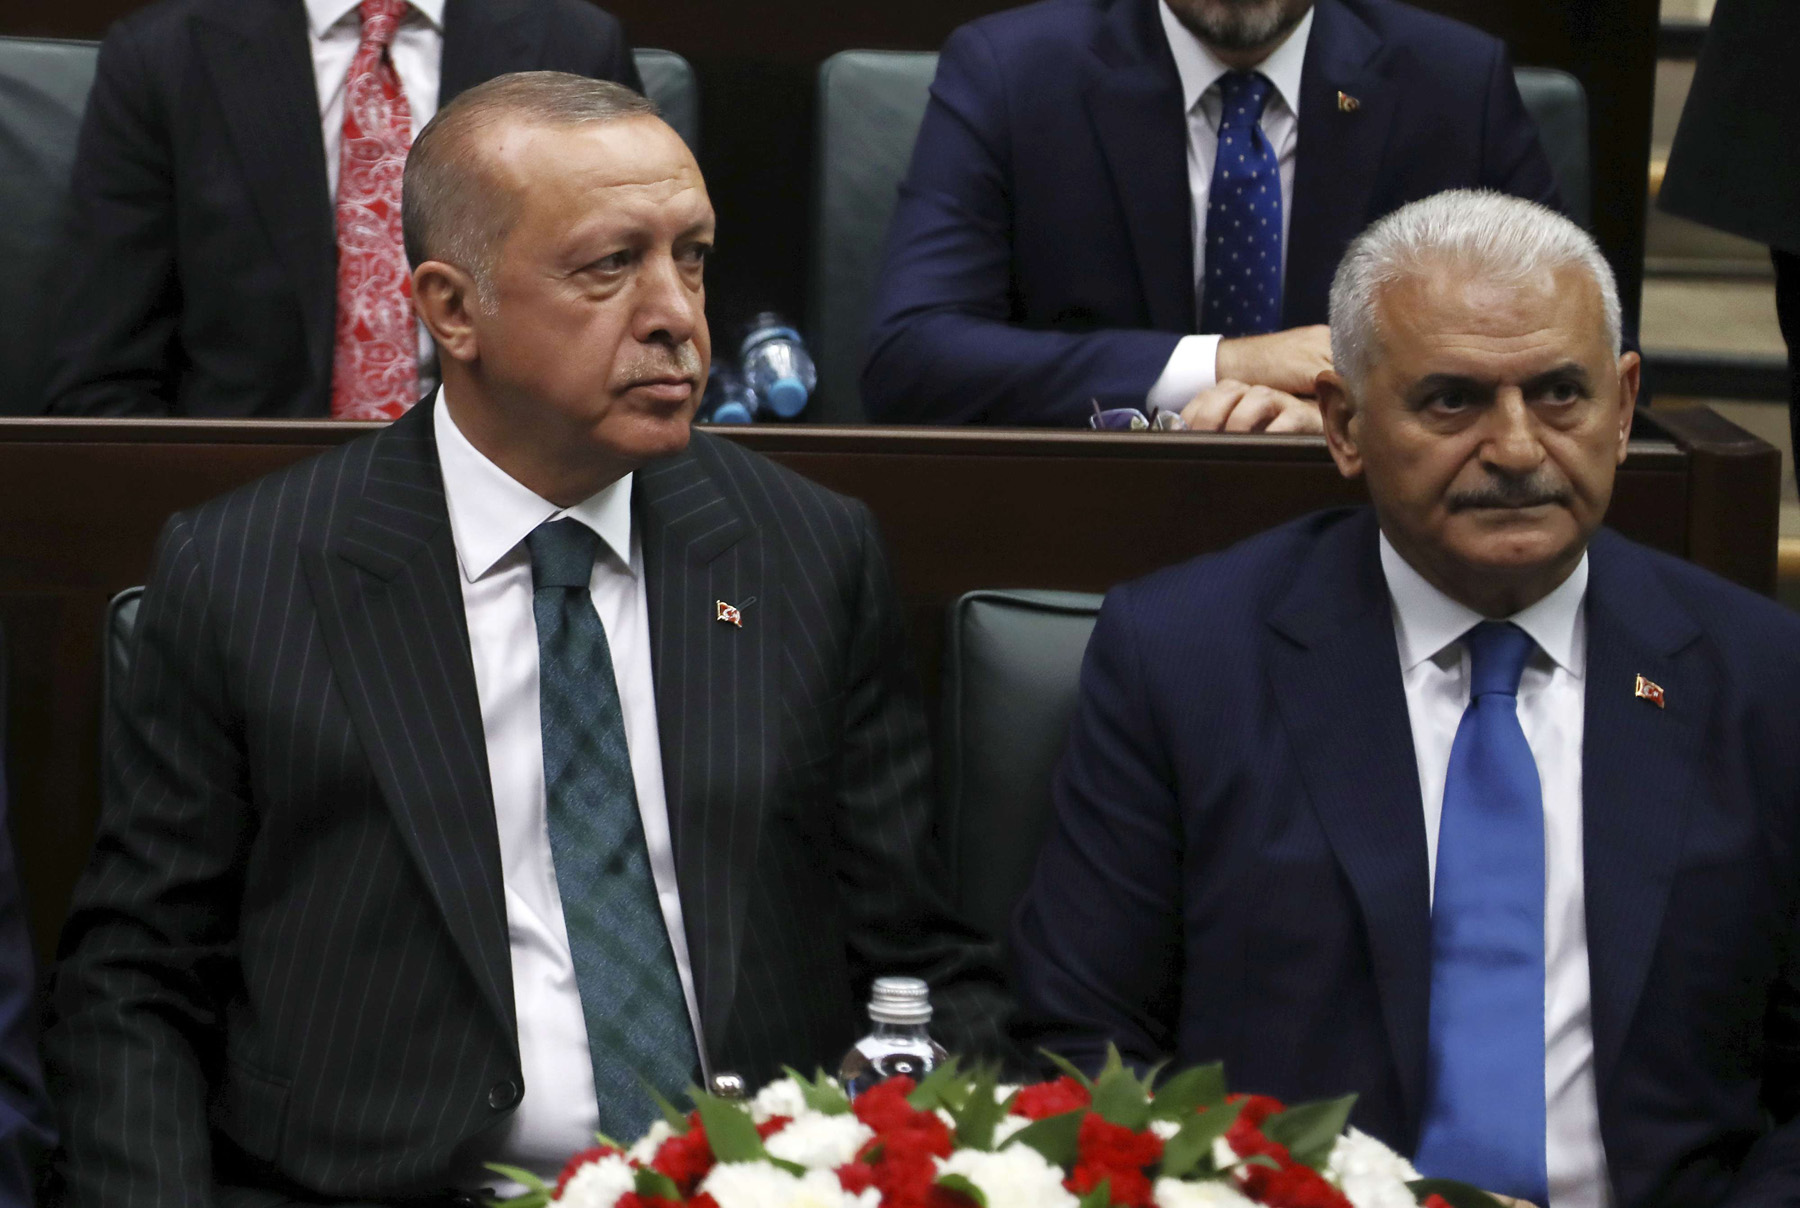 Loser and friend. Turkey's President Recep Tayyip Erdogan (L) with Binali Yildirim, his mayoral candidate for Istanbul, attends a parliament session in Ankara, Turkey, June 25, two days after  elections(AP)